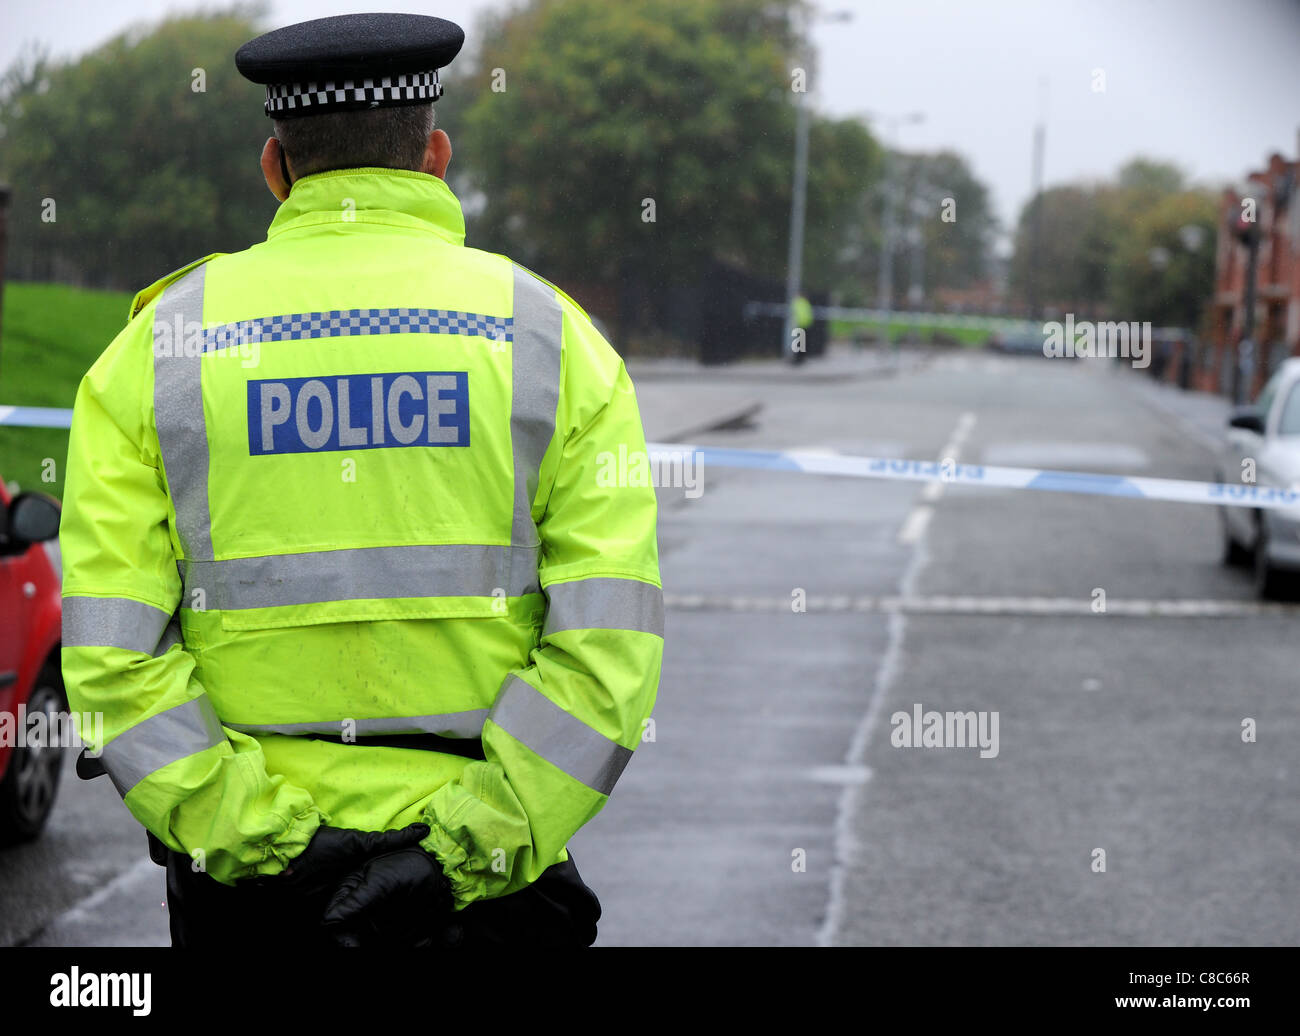 Policeman at the scene of a shooting incident in Salford, Greater Manchester, England. Sunday October 09, 2011 - Stock Image